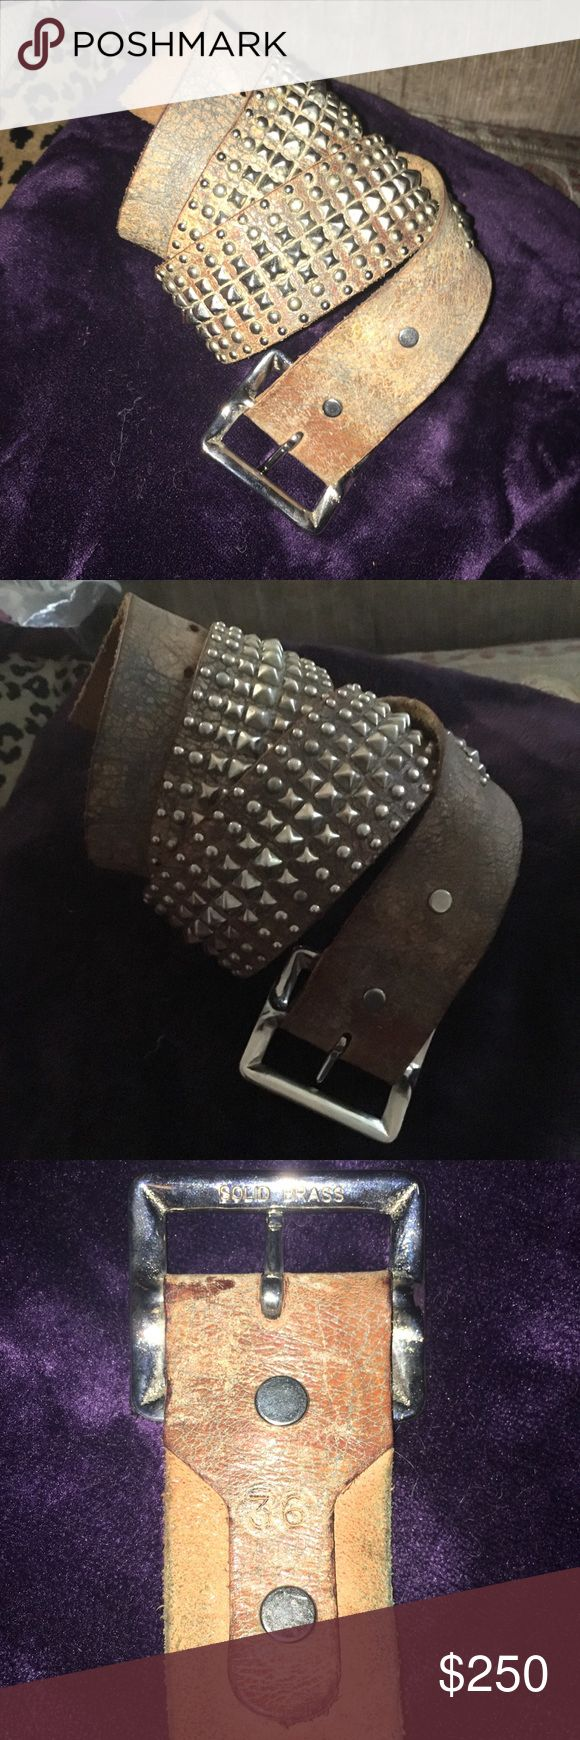 Calleen Cordero belt sz 36 Calleen Cordero handmade belt. Worn a few times. Grey/silver leather and nickel grommets  are hand done on this belt. Statement piece. Just sitting in my drawer. Calleen Cordero Accessories Belts